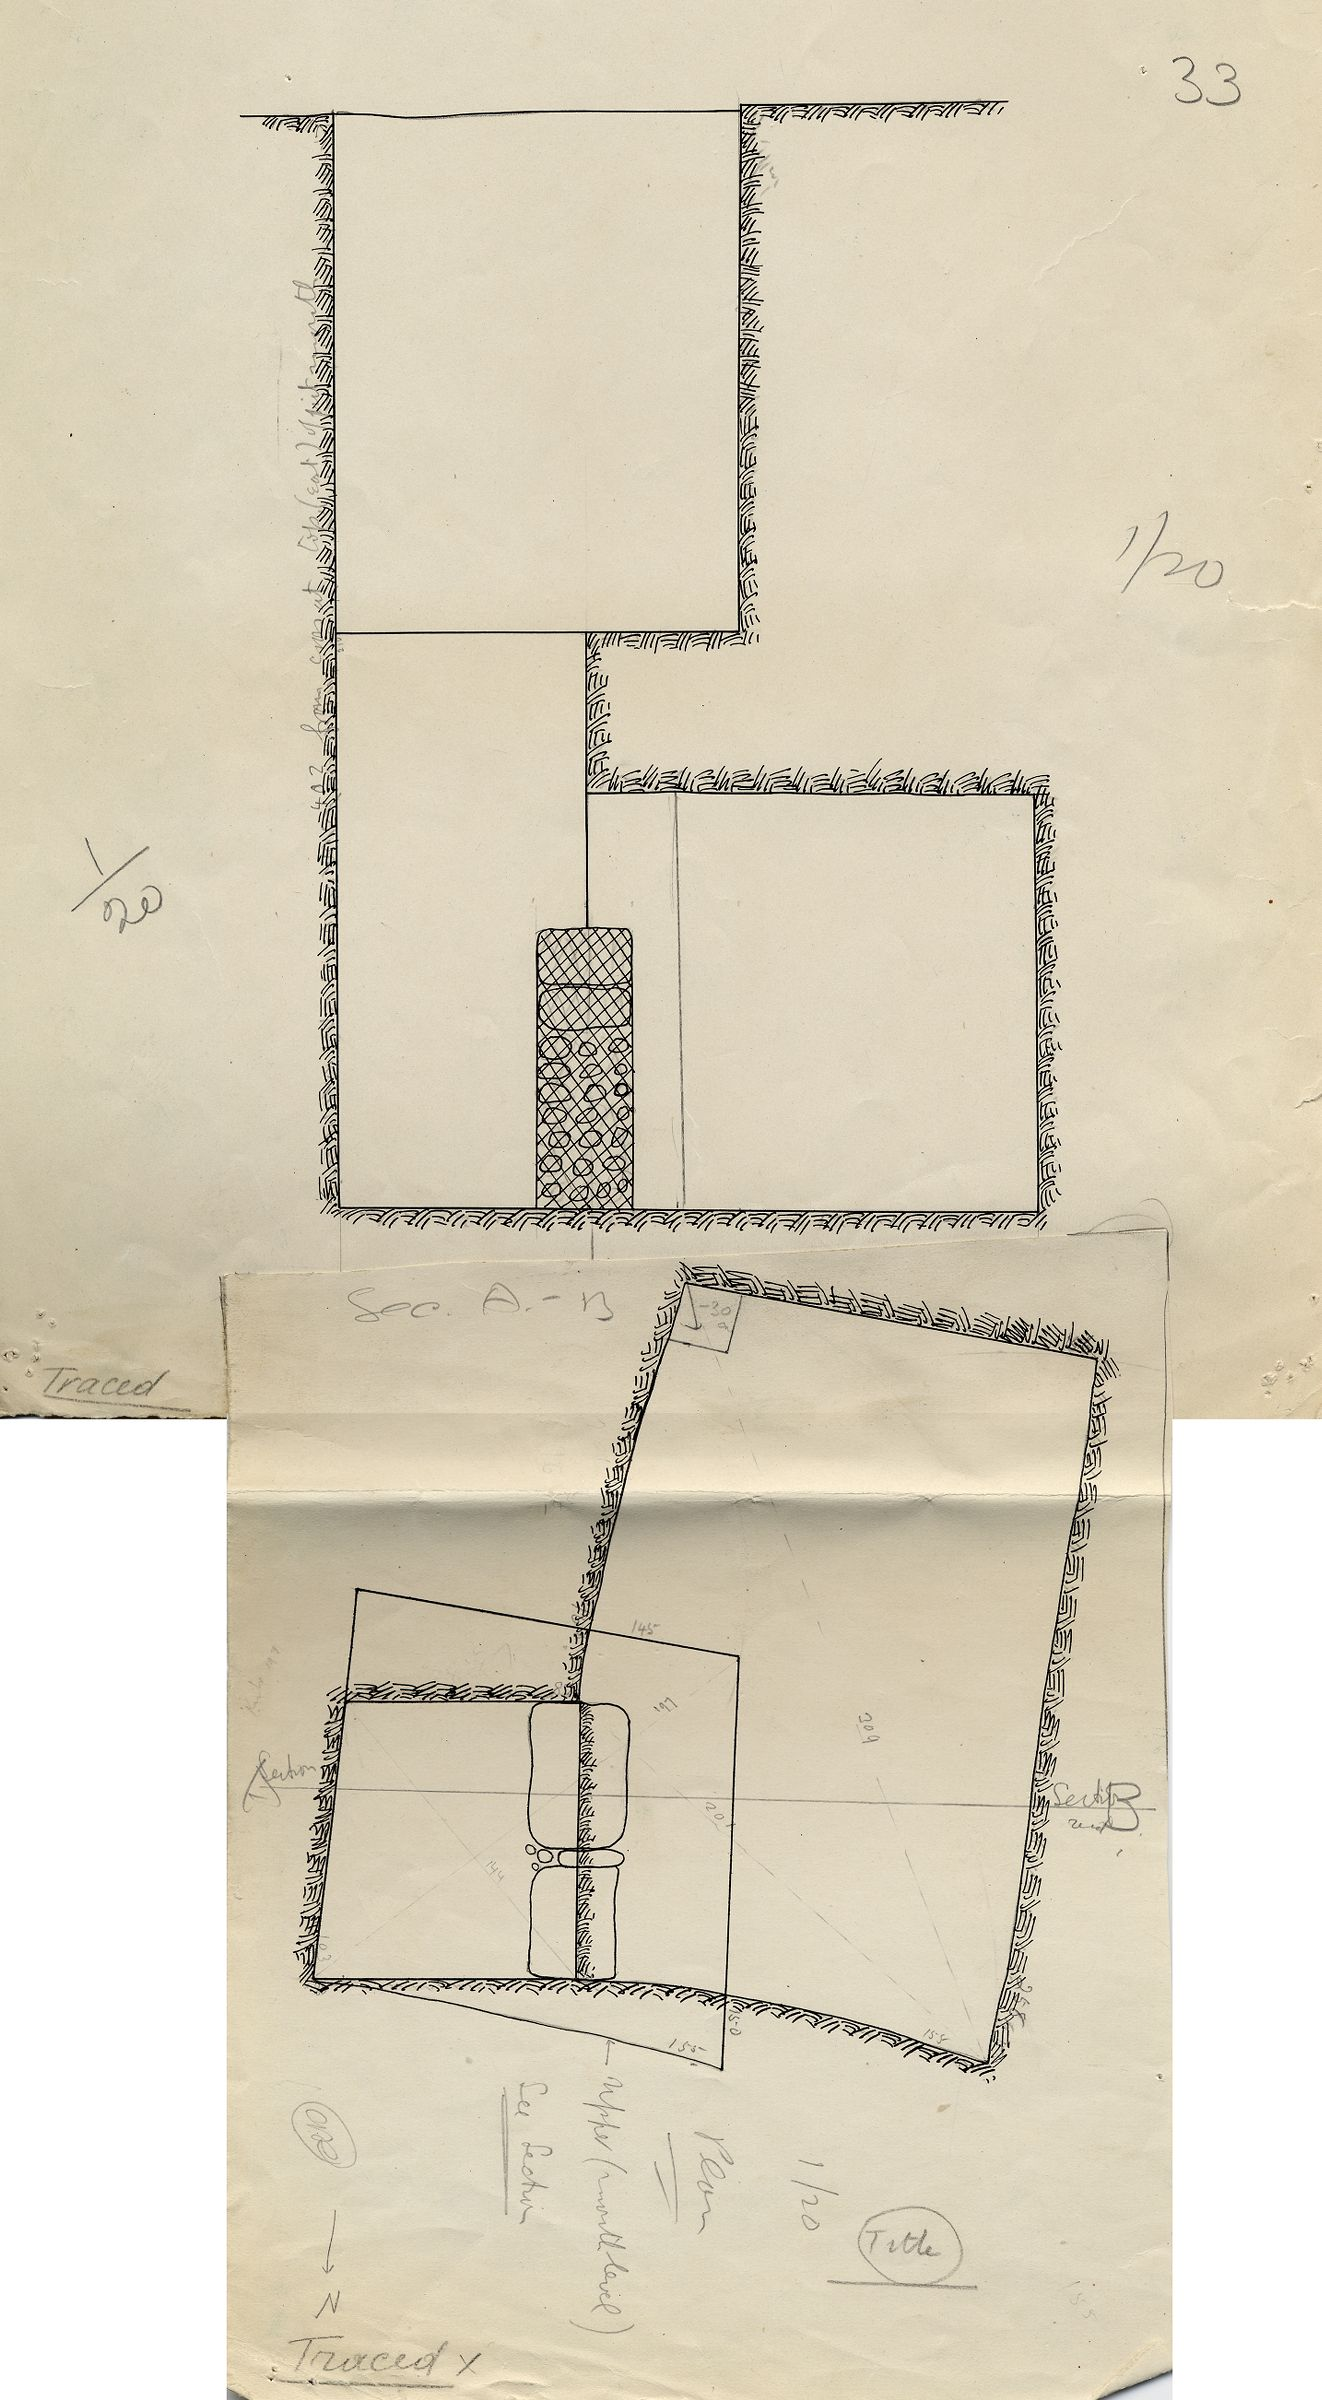 Maps and plans: G 7422, Shaft C